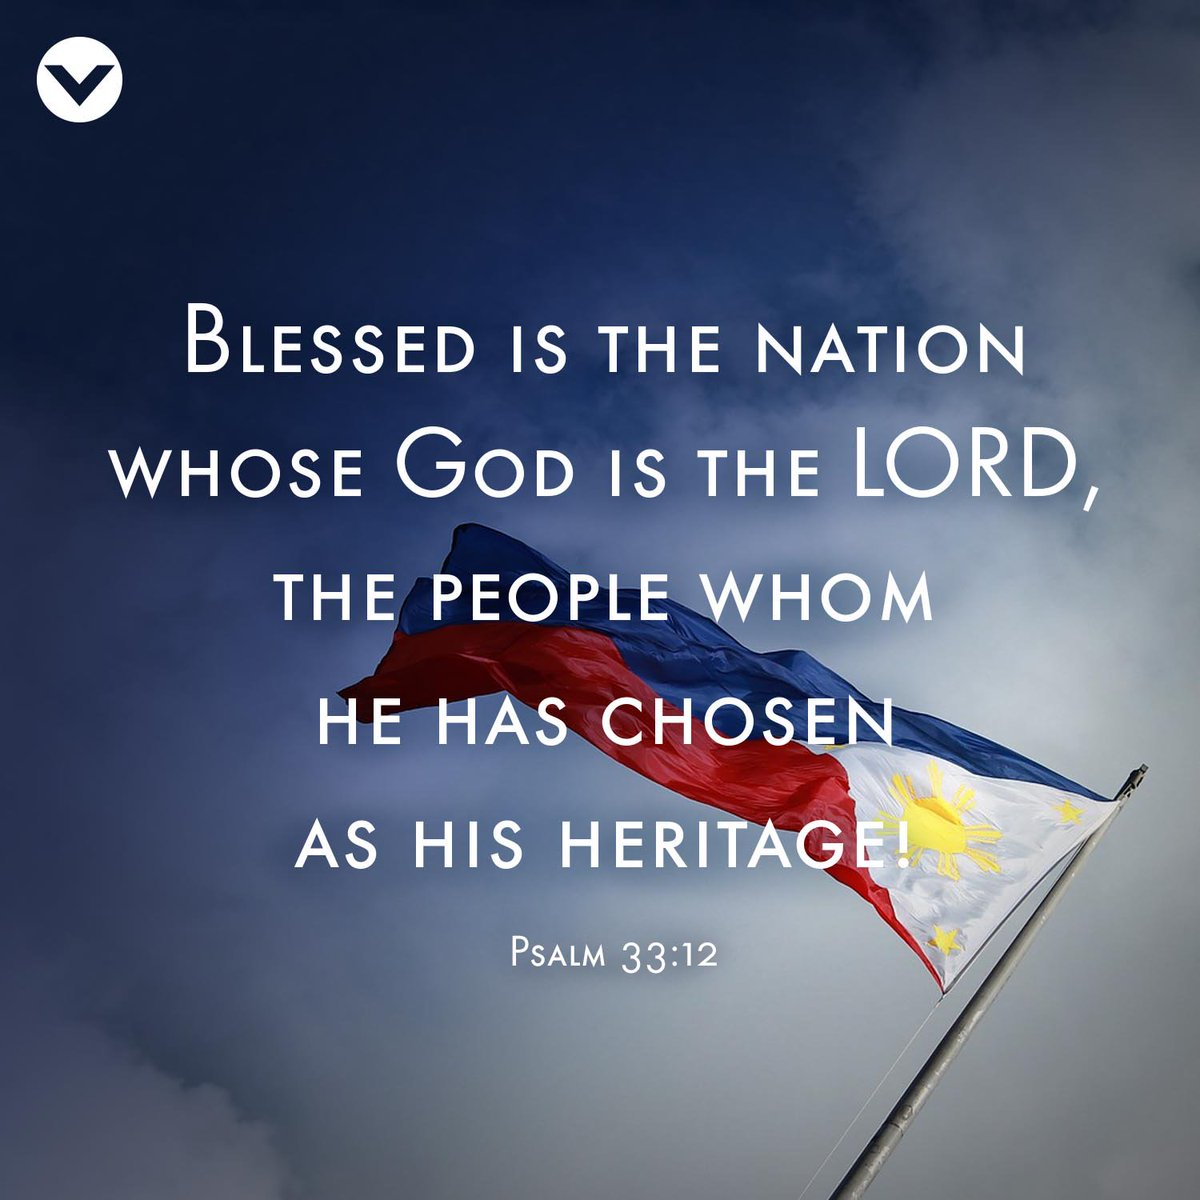 As our nation celebrates Independence Day today, let's take time to pray for the Philippines. https://t.co/6FkhjRDeX9